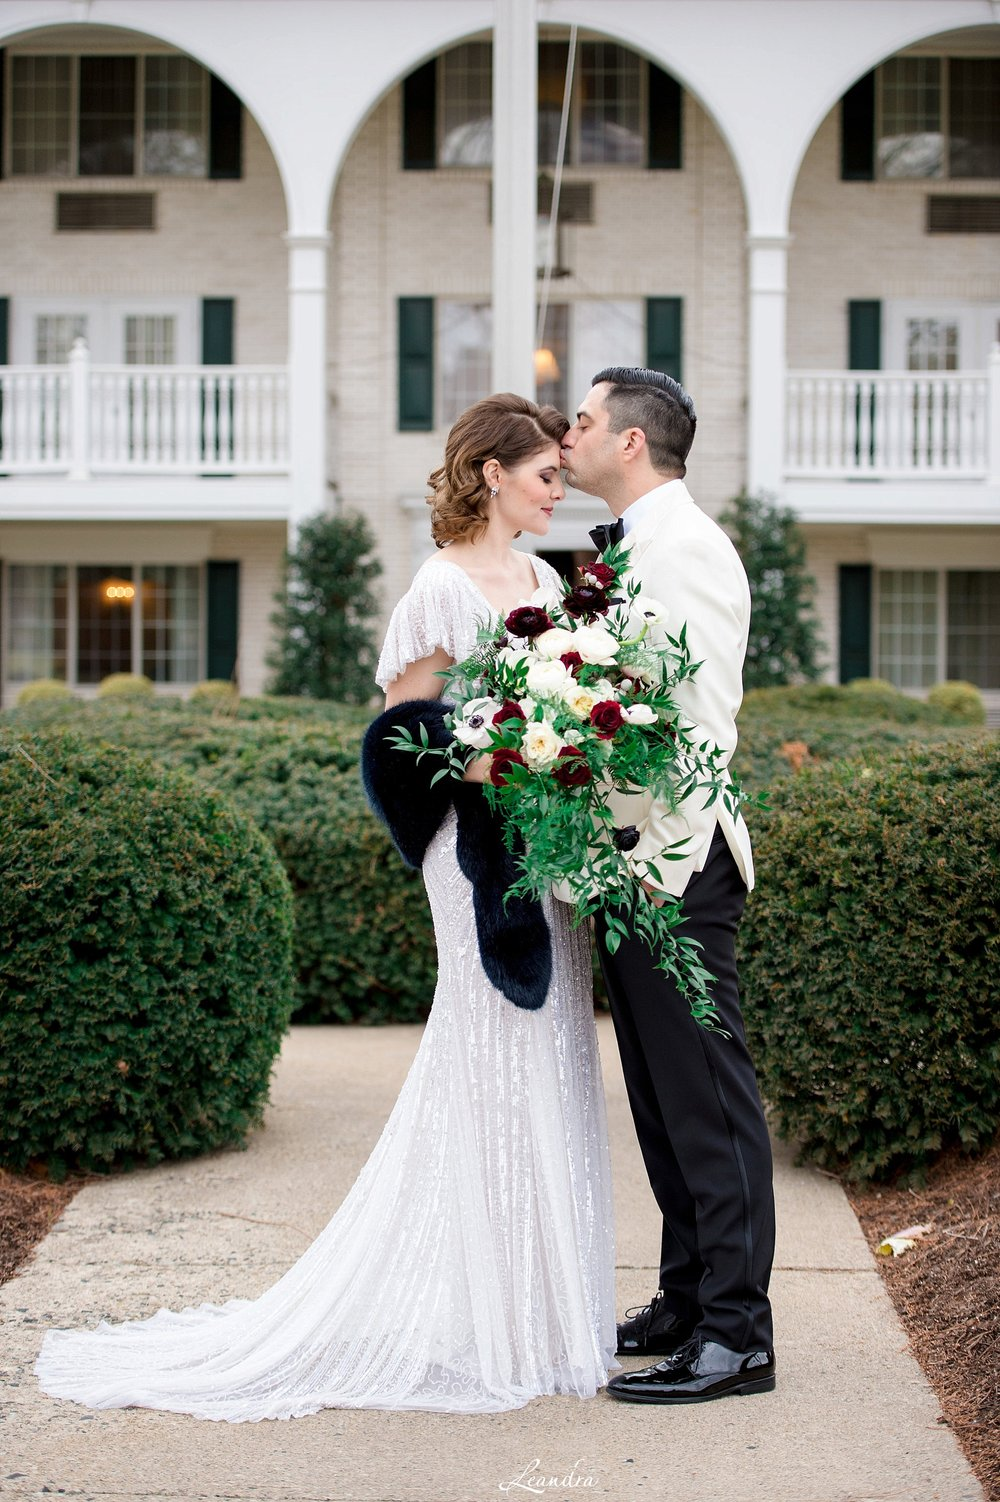 TheMadisonHotelWedding_0024.jpg